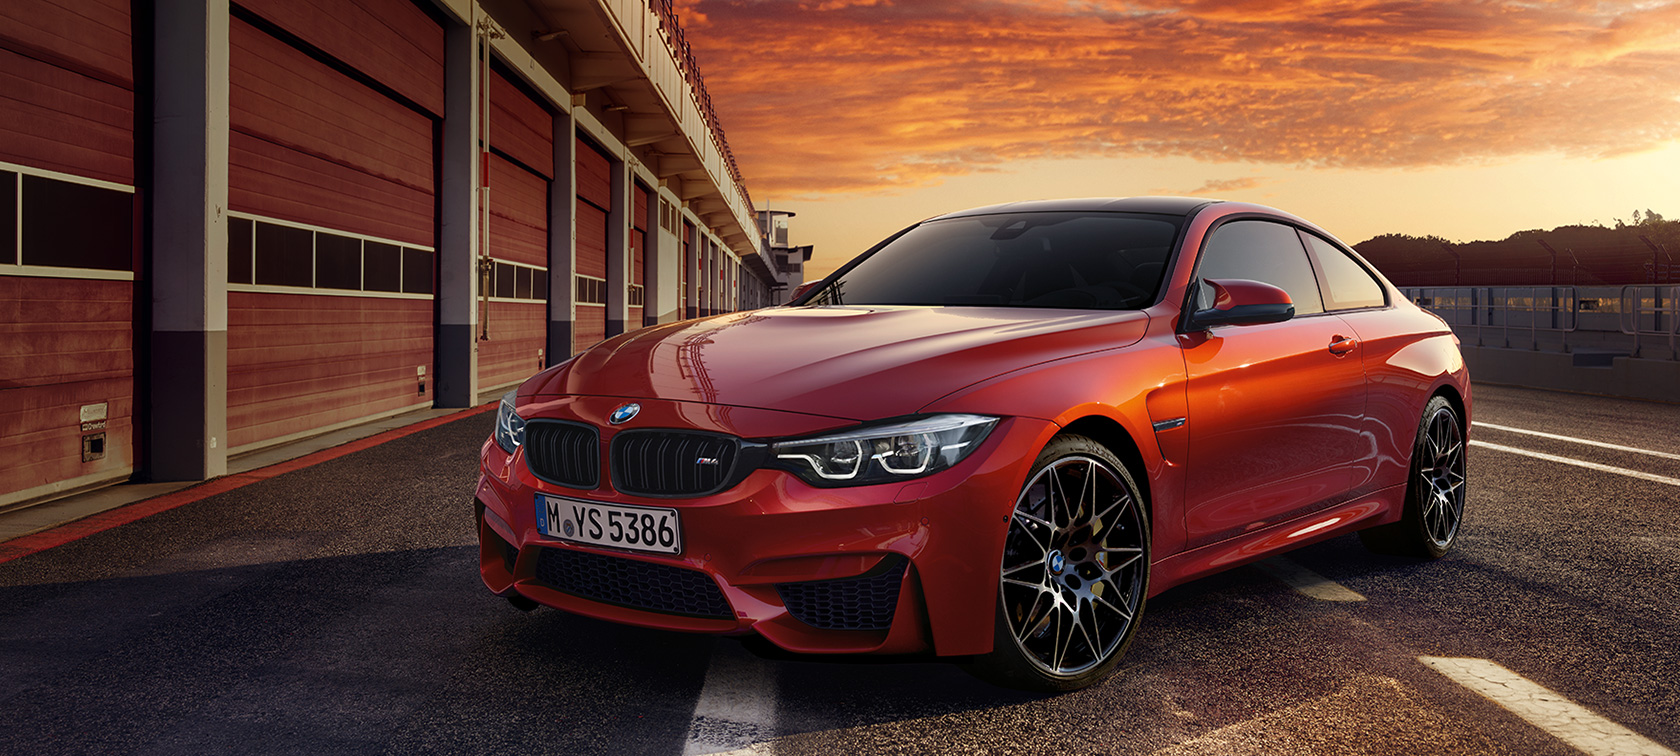 THE DESIGN OF THE BMW M4 COUPÉ.